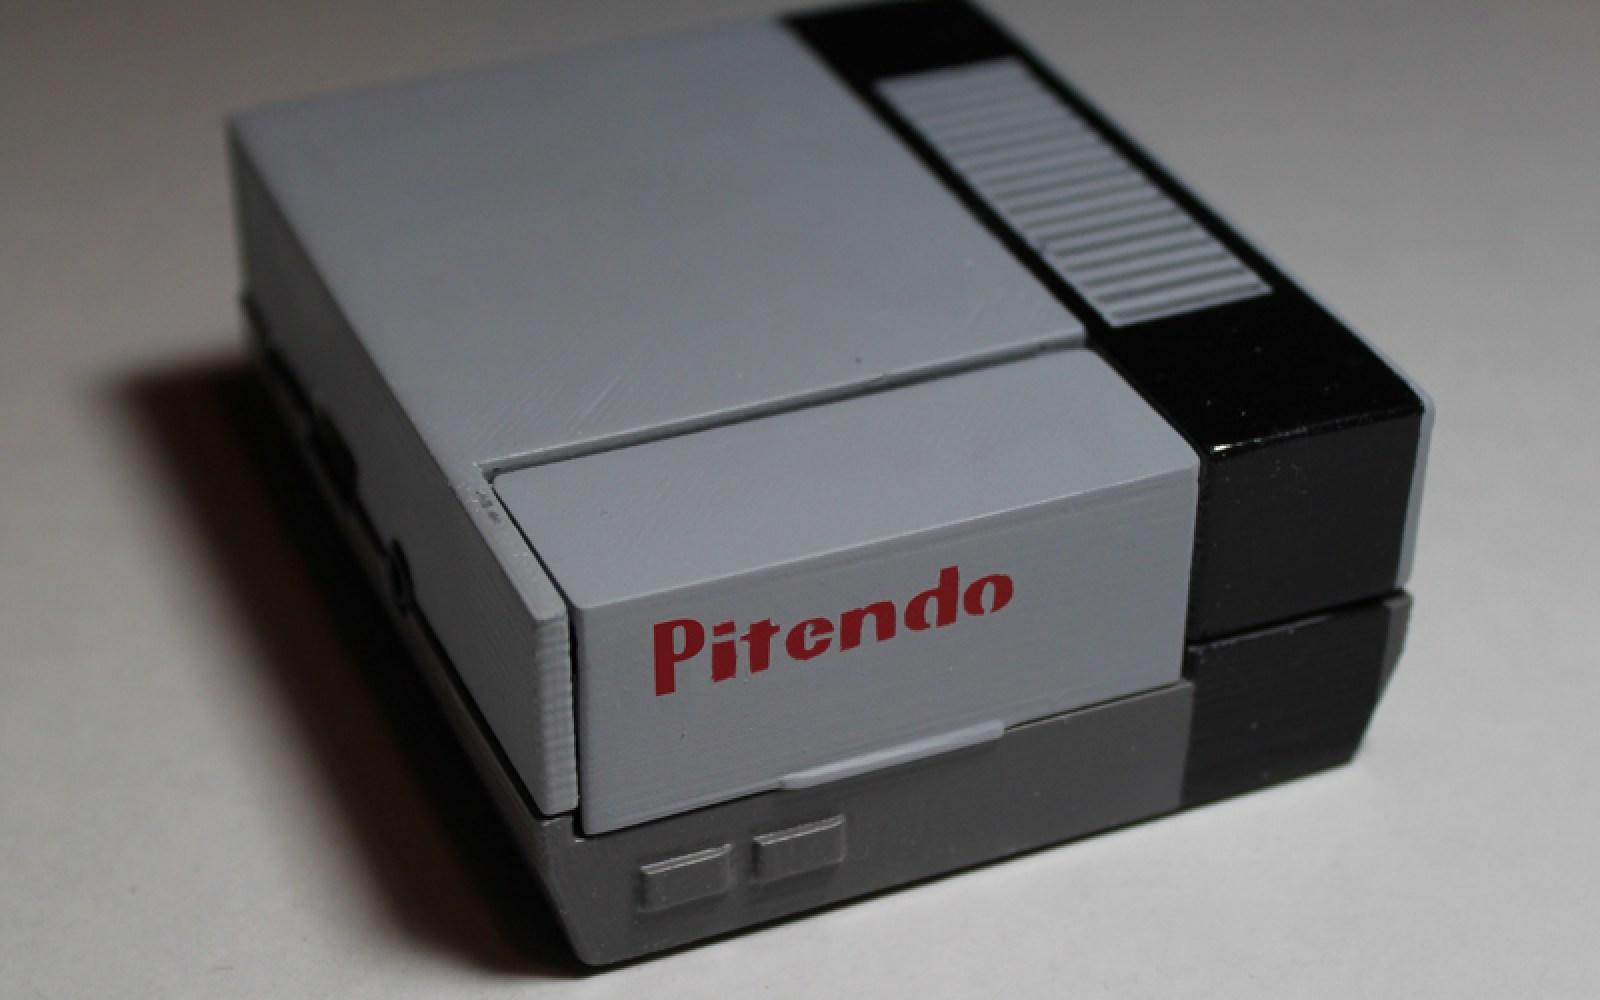 Relive your favorite classic video games with the pocket sized Pitendo NES emulator